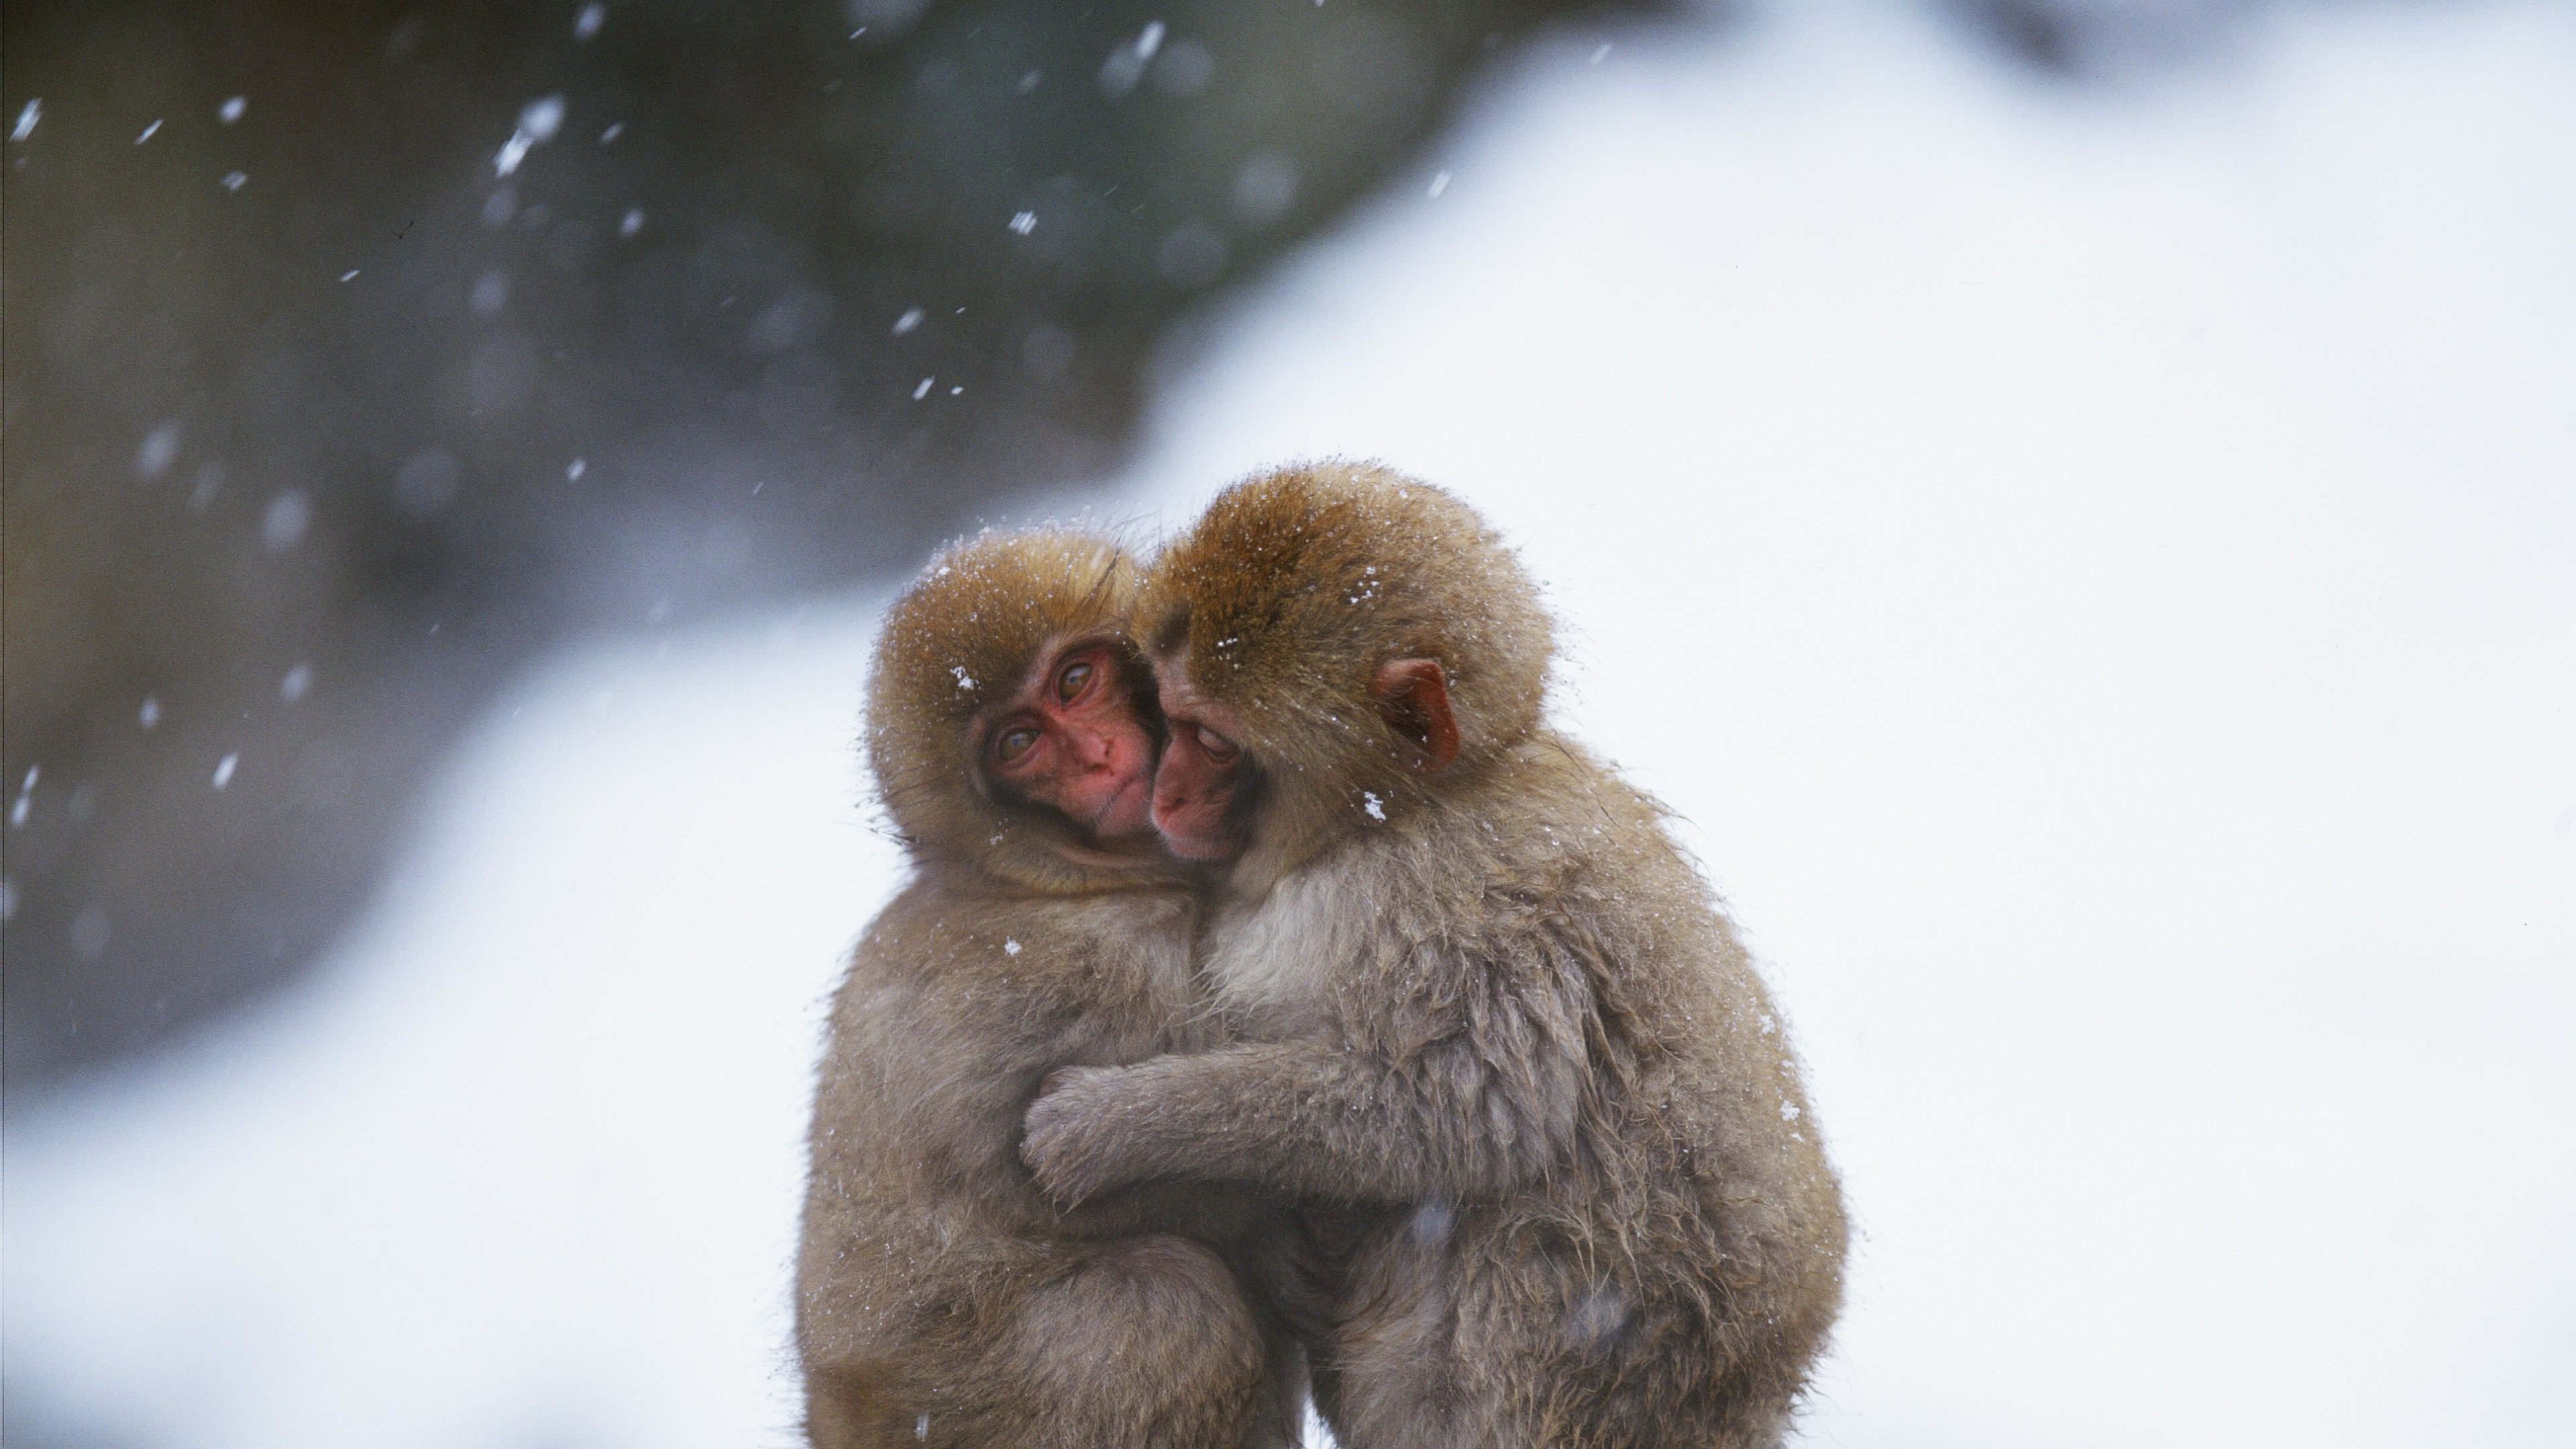 Cute Summer Wallpapers For Girks Embrace Between Two Monkeys In A Cold Day